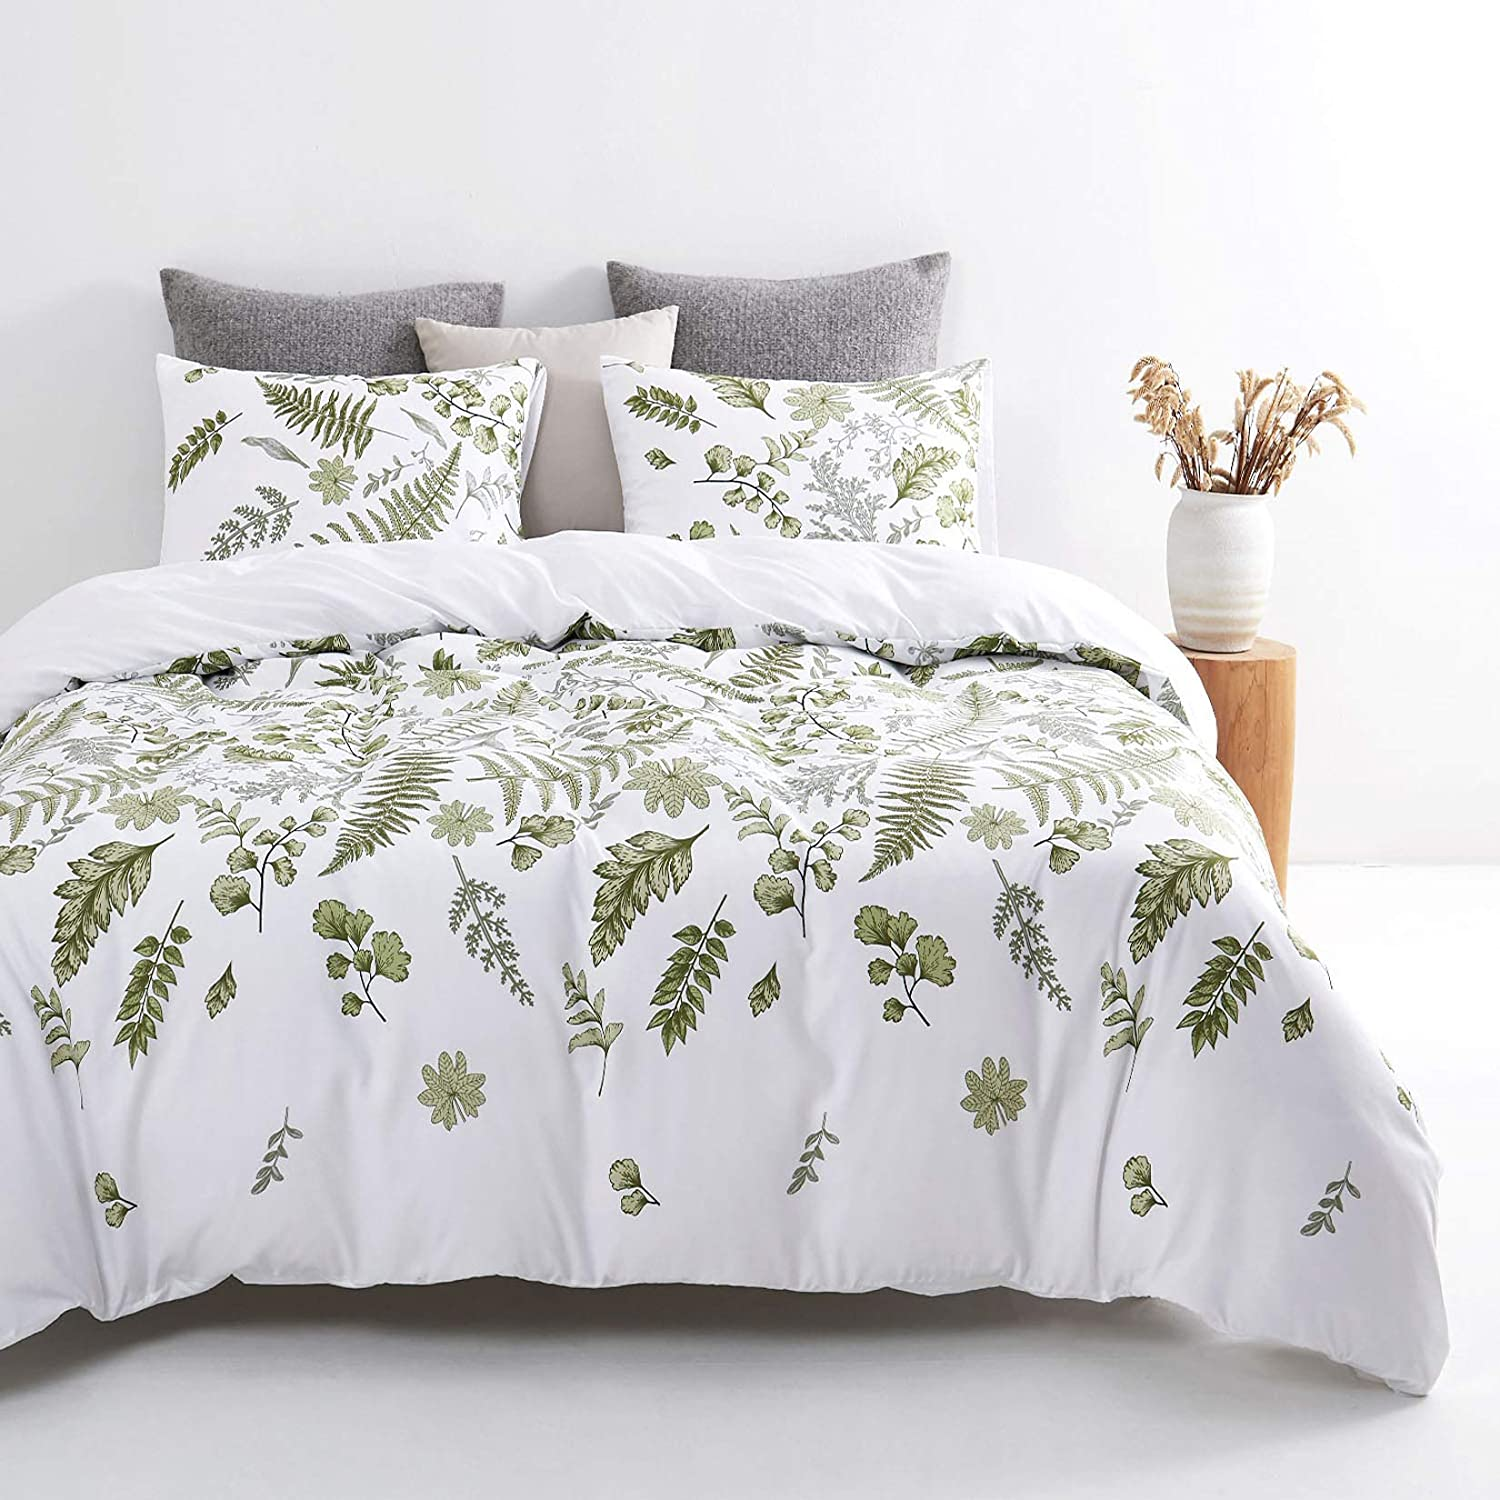 Wake In Cloud - Leaves Comforter Set, Green Plant Botanical Tree Leaf Pattern Printed on White, Soft Microfiber Bedding